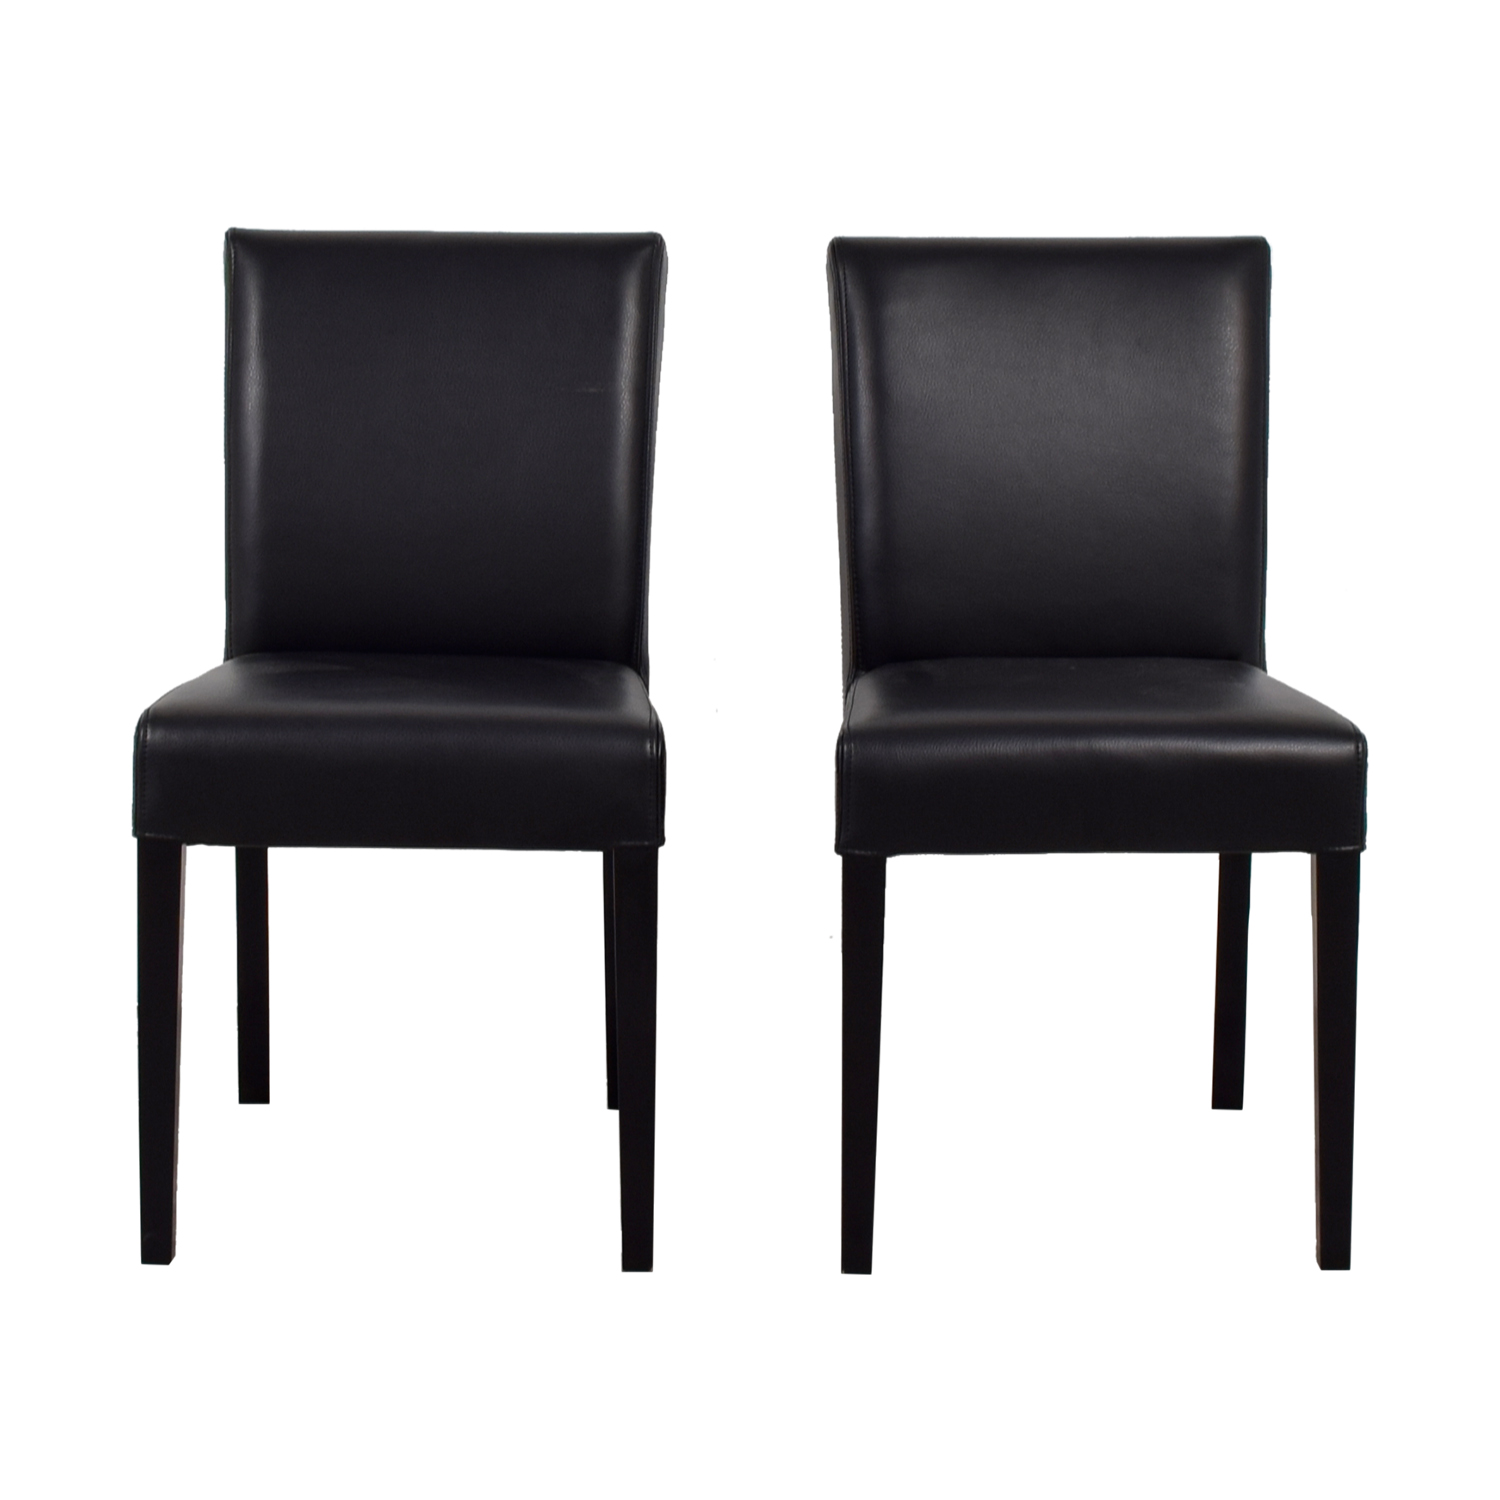 Crate & Barrel Crate & Barrel Lowe Black Leather Dining Chairs second hand